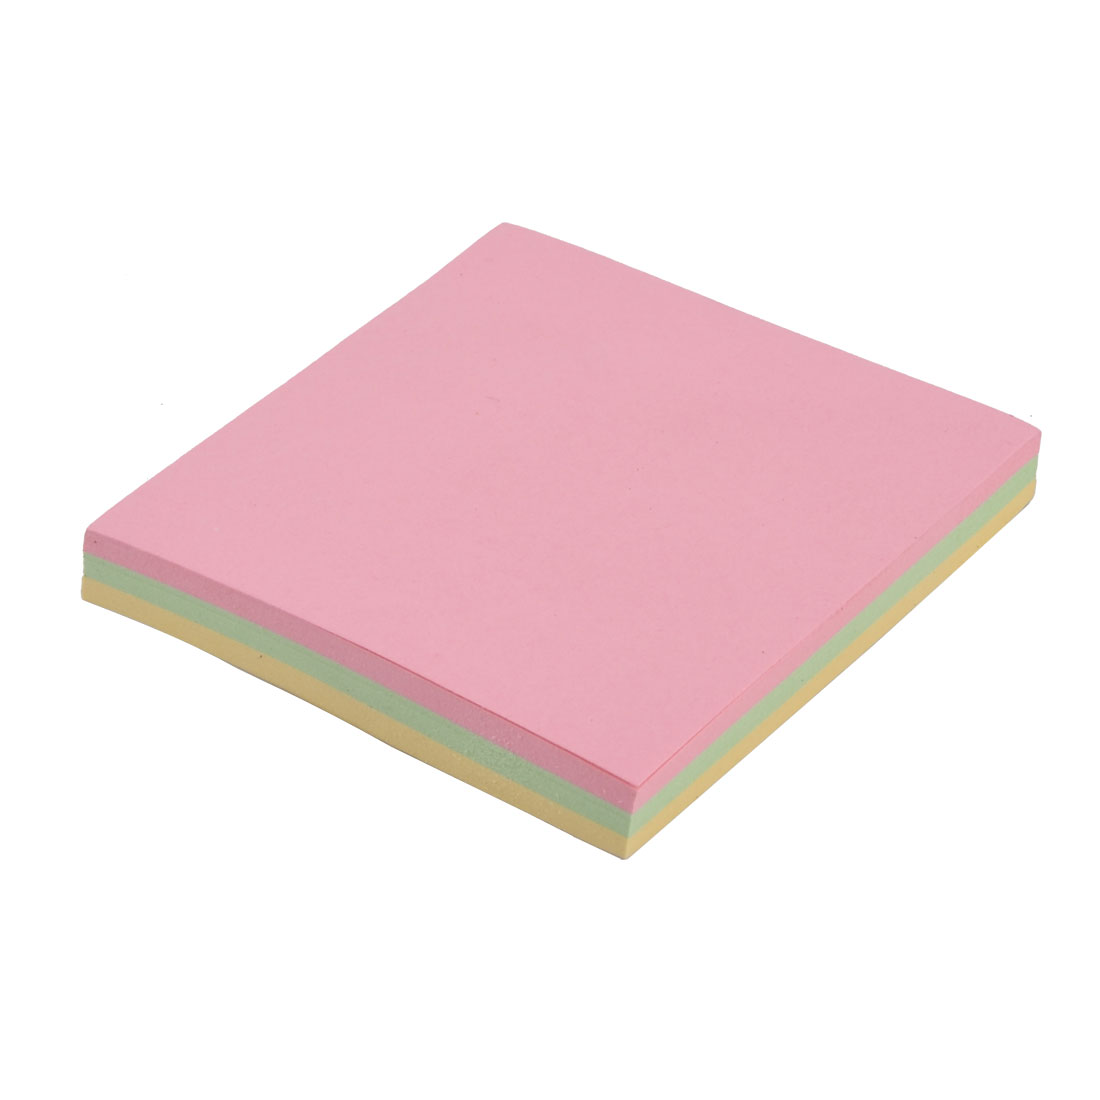 Household Office School Bedroom Paper Self Adhesive Memo Message Sticky Note